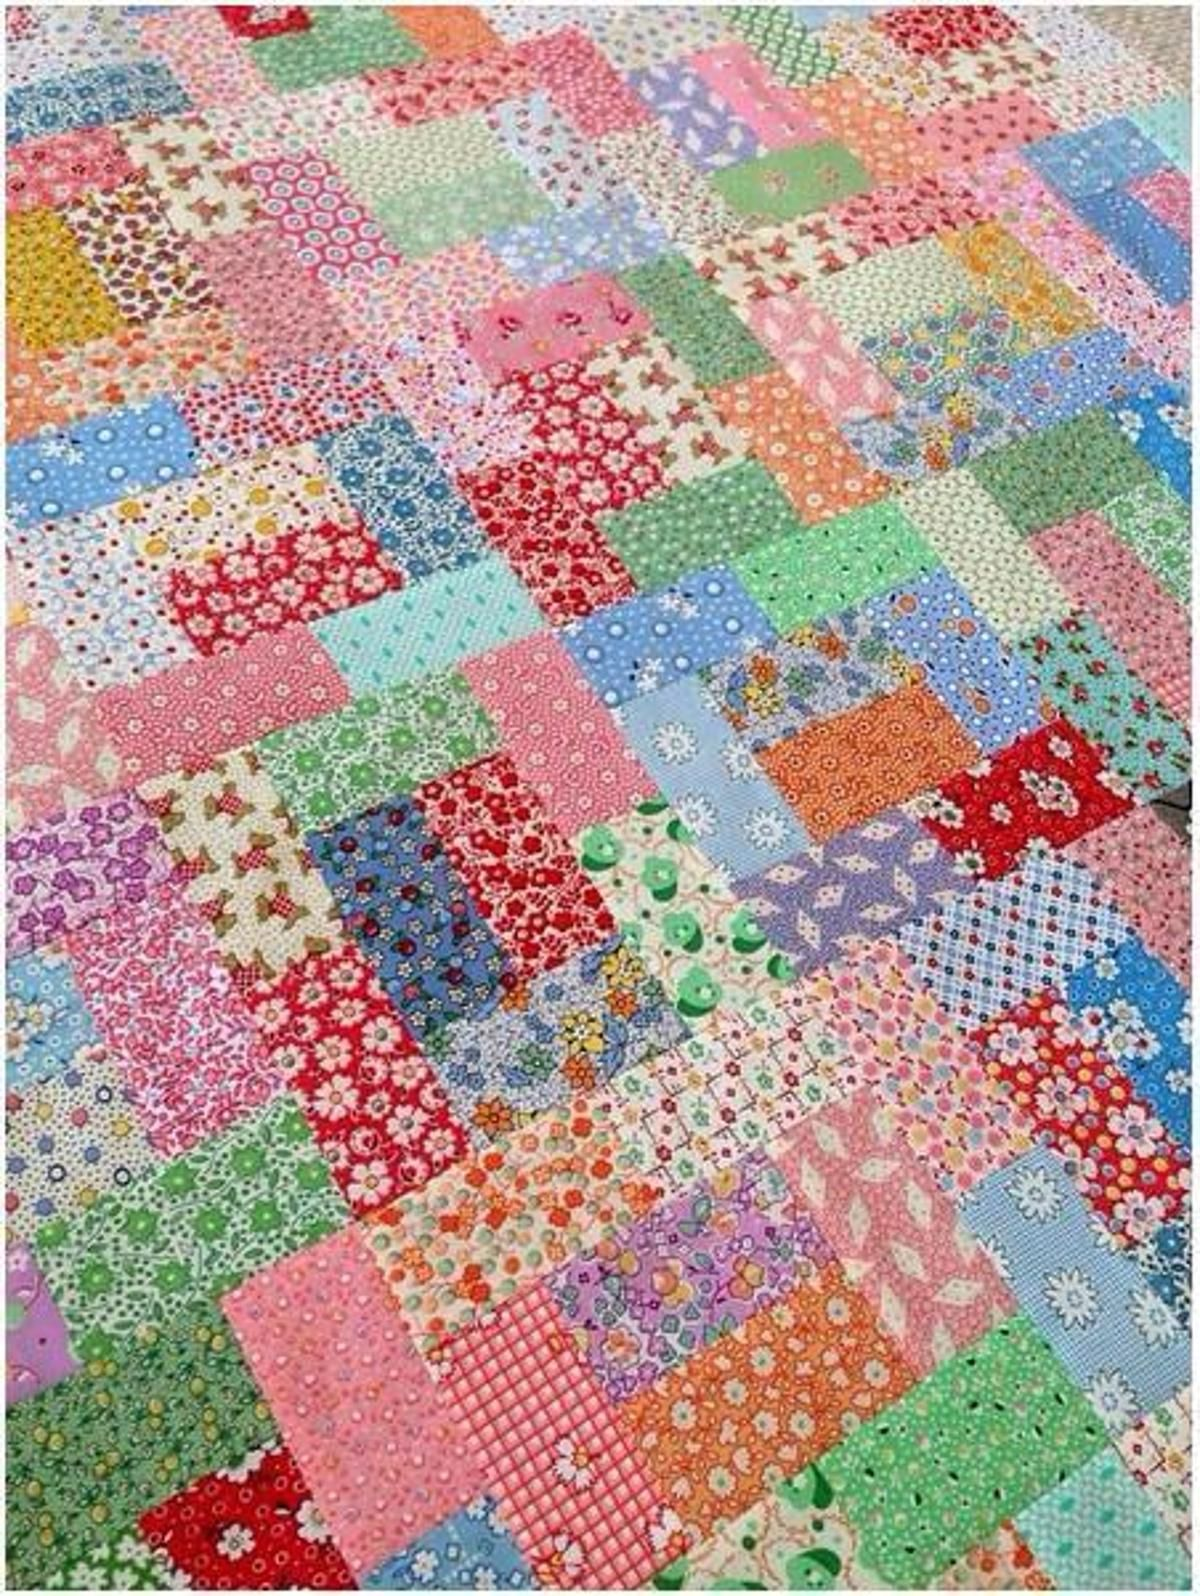 Retro Dreams 1930's Quilt Pattern (30's)   Retro, Patterns and ... : 1930s quilt patterns - Adamdwight.com